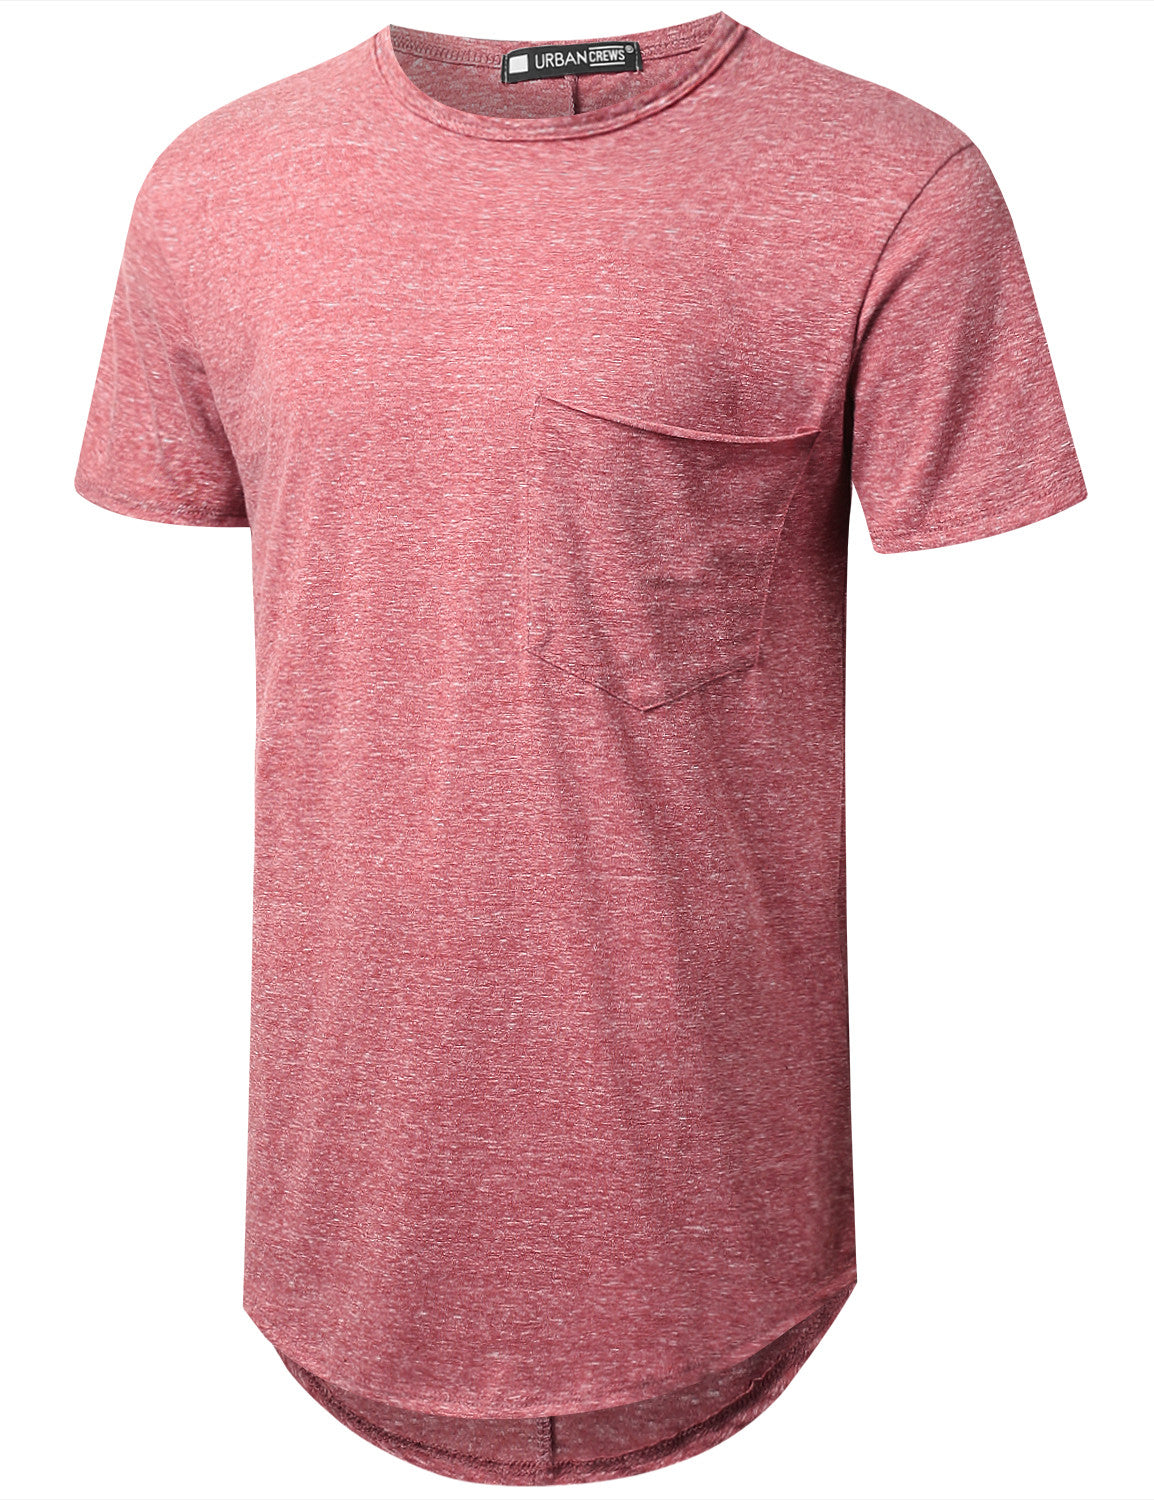 LTBURGUNDY Melange Longline Pocket T-shirt - URBANCREWS